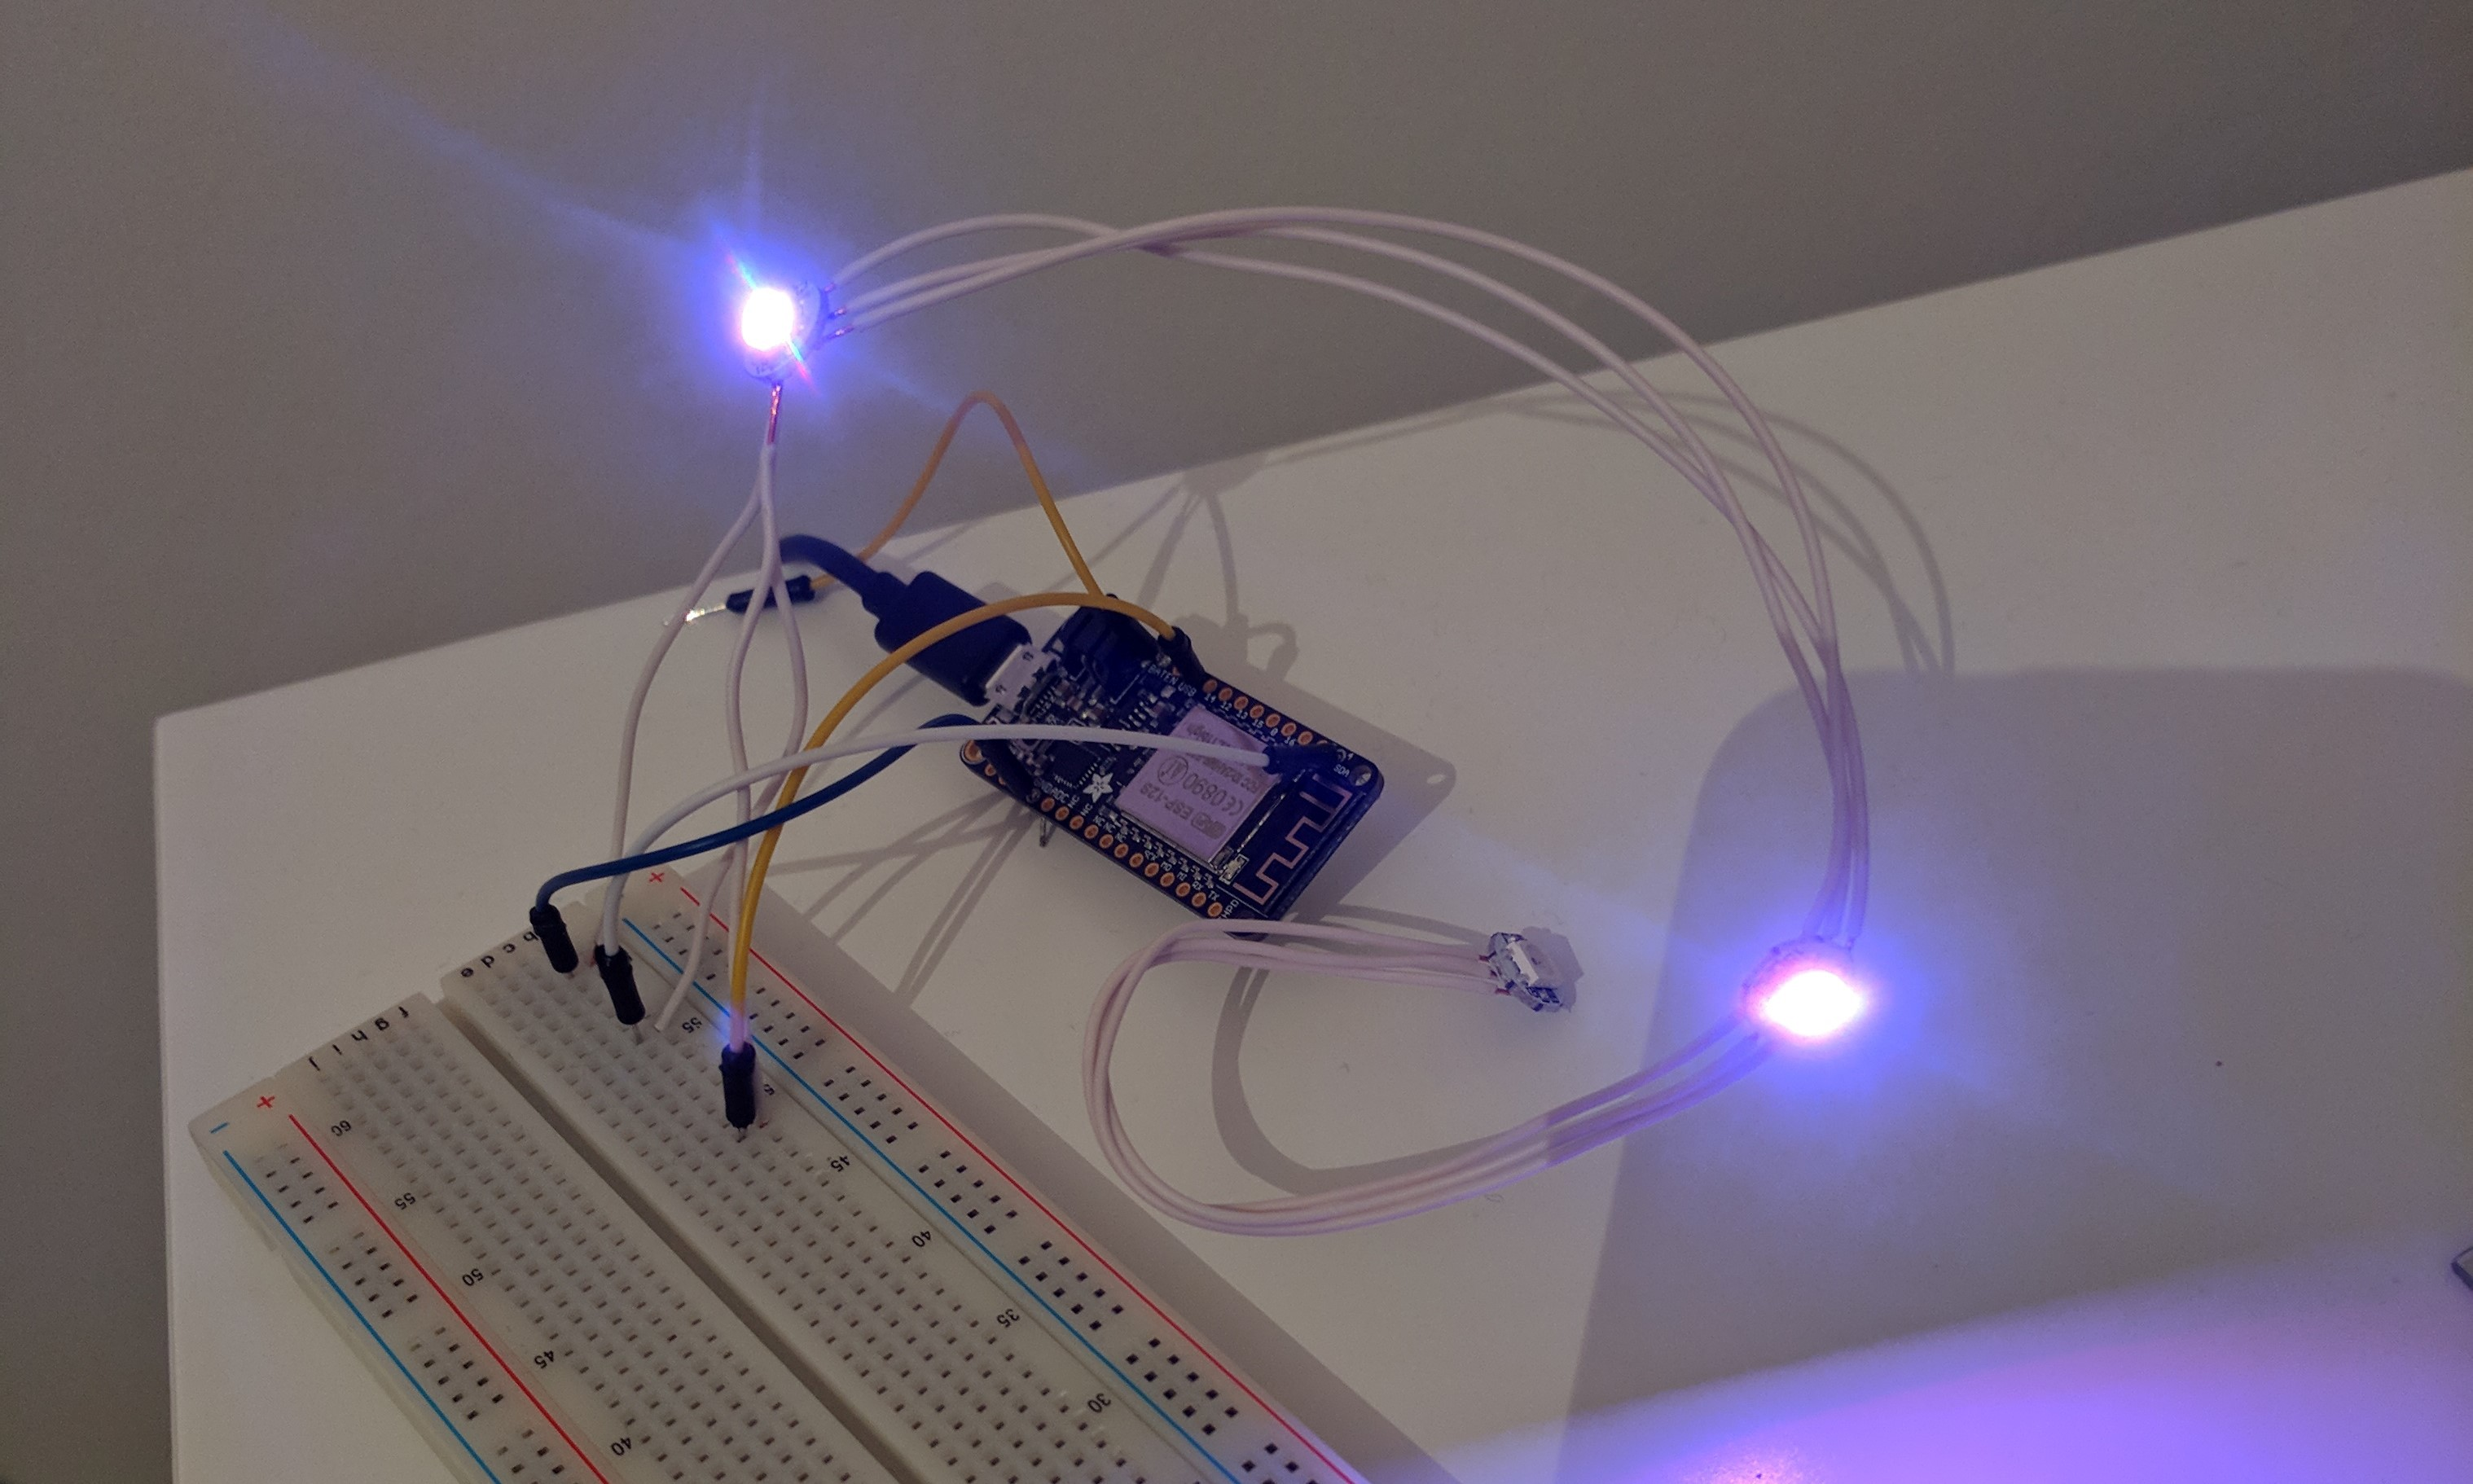 Connecting individual pixel LEDs to the Adafruit Feather using a breadboard.